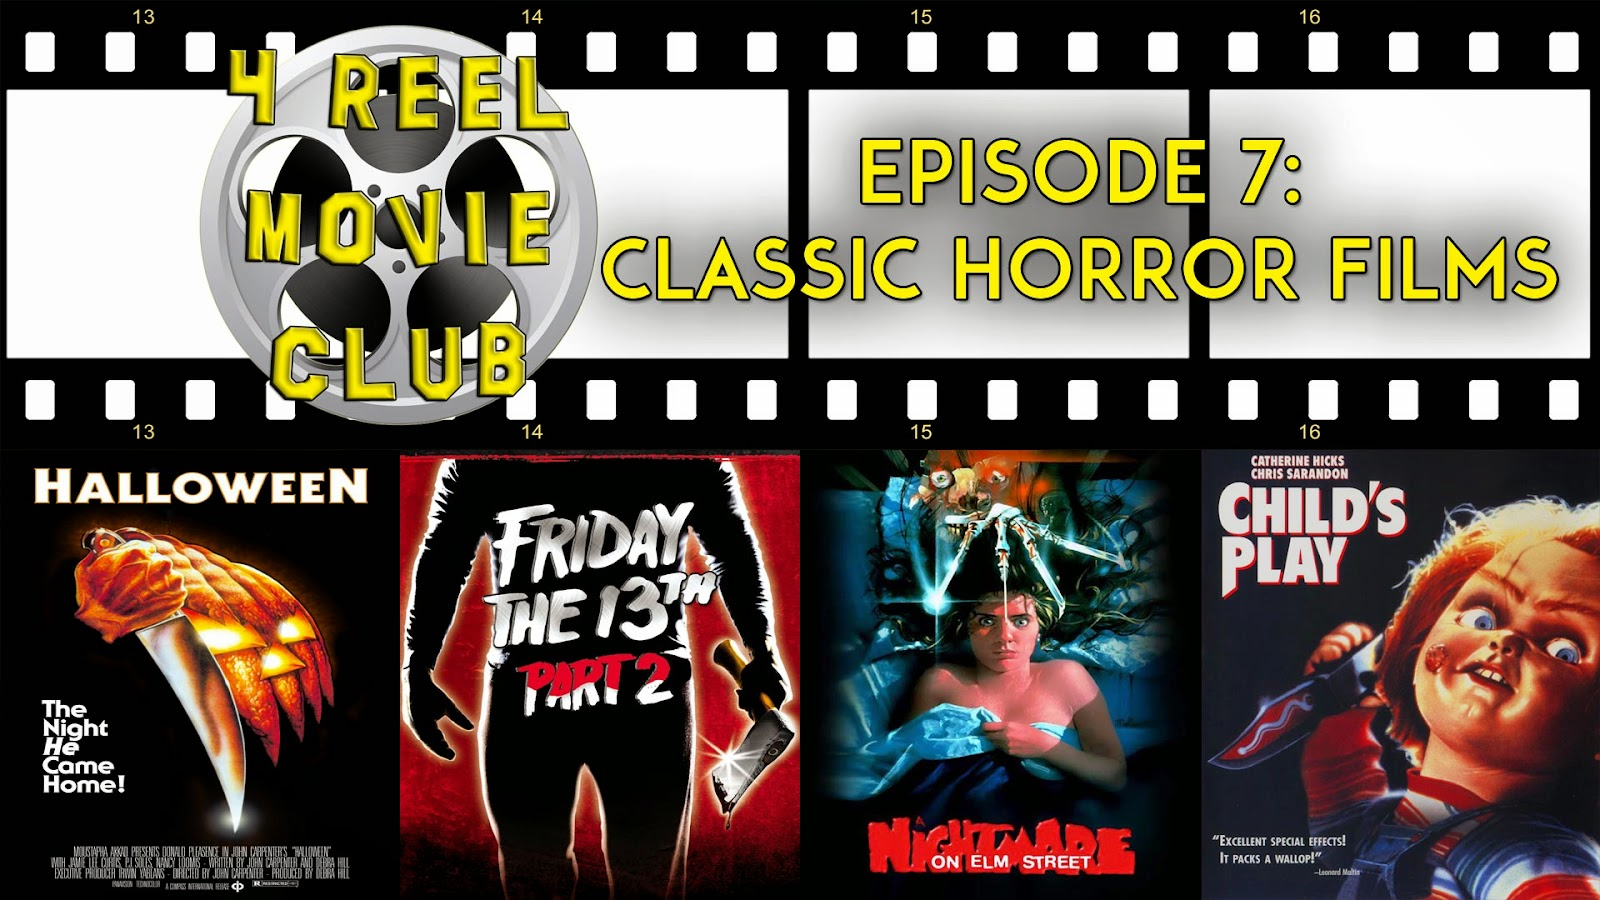 Halloween, Friday the 13th Part 2, A Nightmare on Elm Street, Child's Play